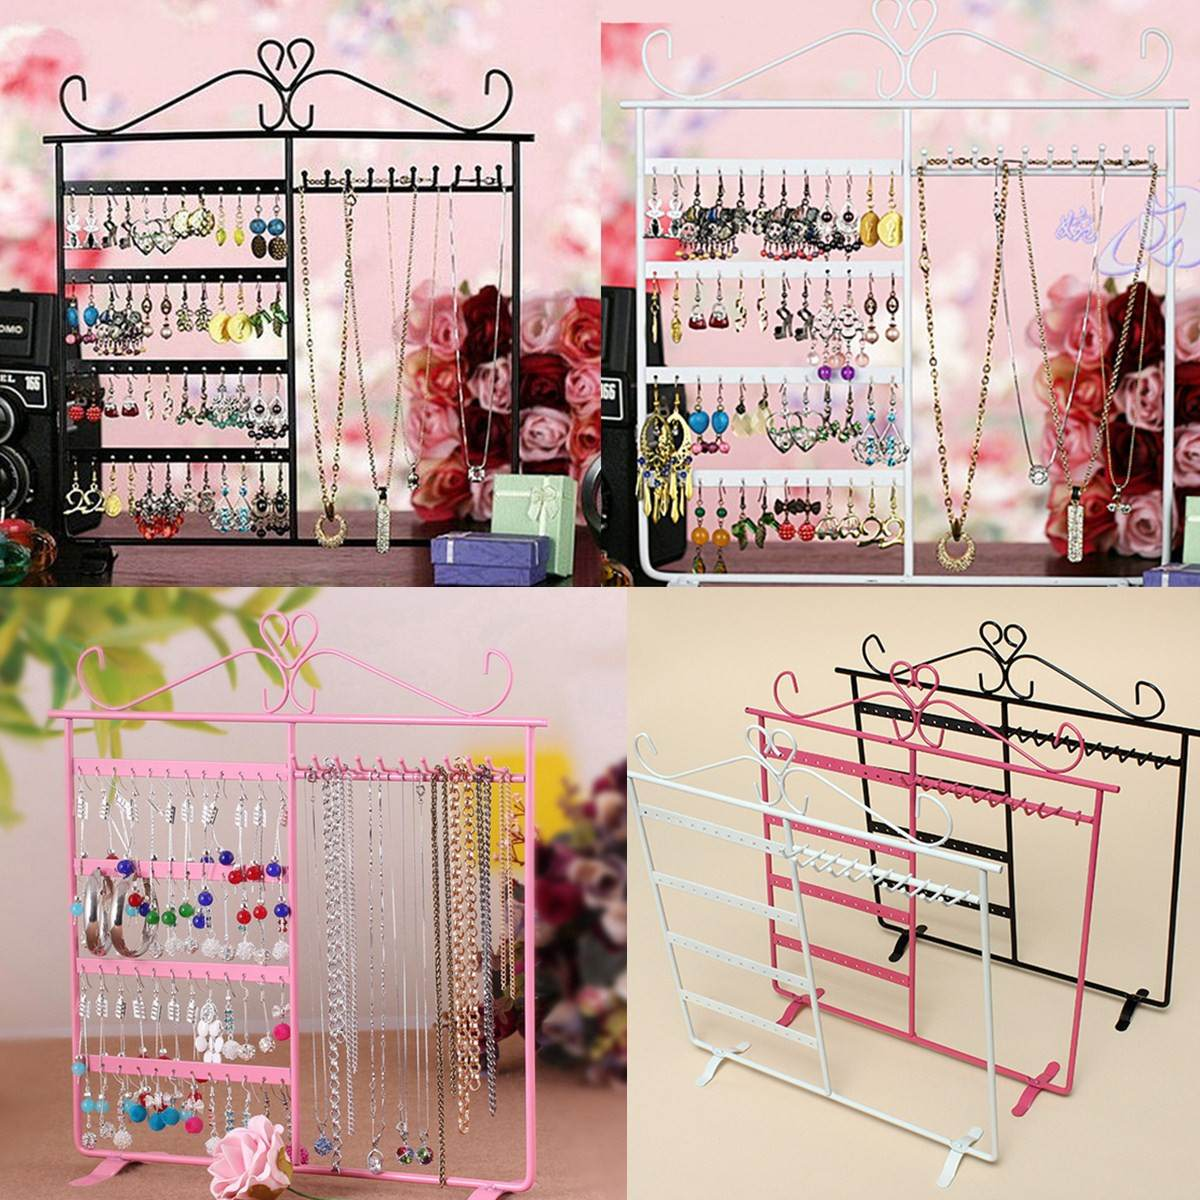 Jewelry-Hanger Chain Iron-Stand-Holder Earring Necklace Showcase Handing-Rack Display-Stand title=